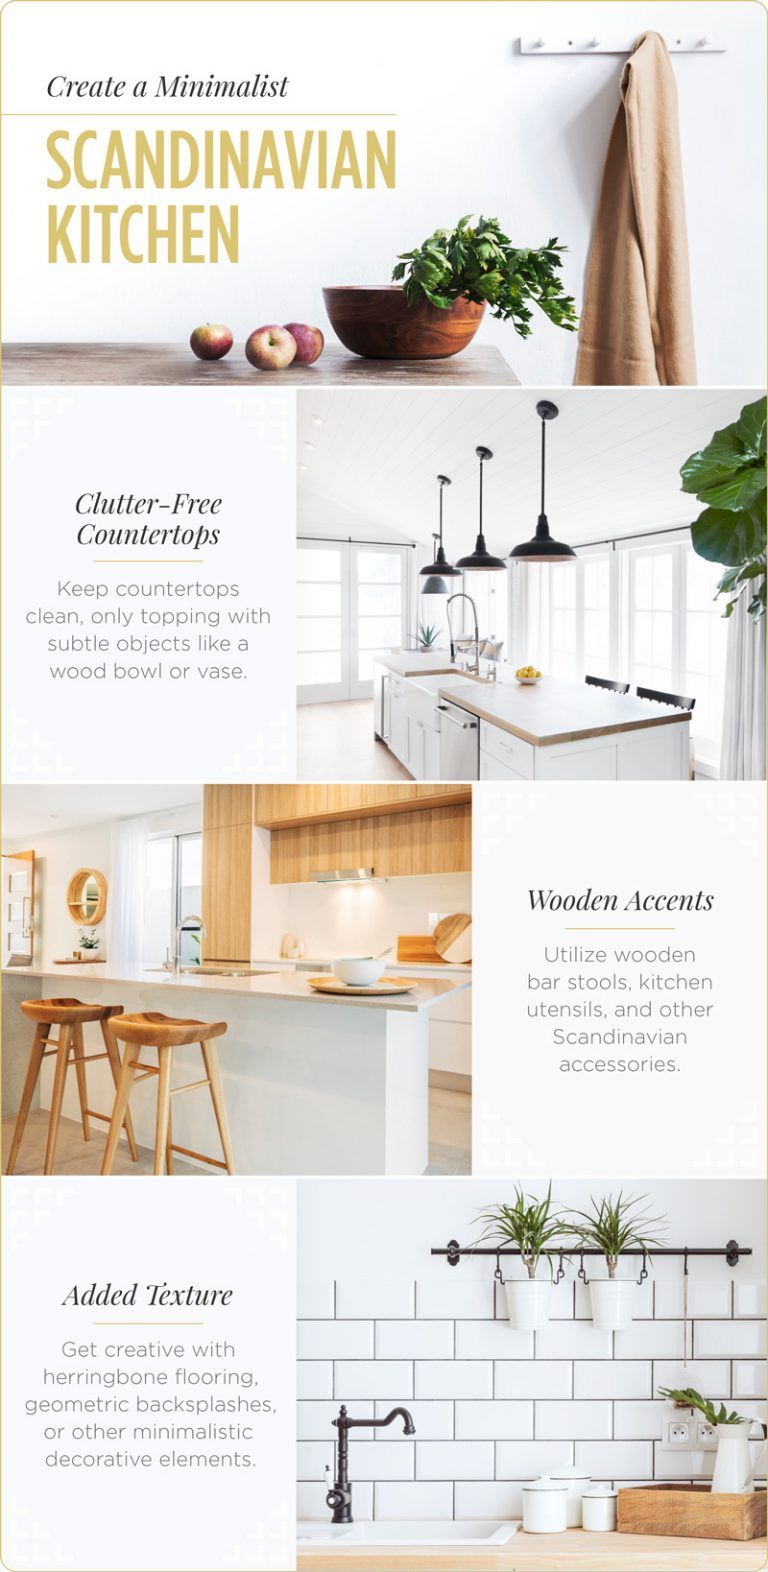 7 Scandinavian Design Principles And How To Use Them Scandinavian Interior Design Scandinavian Design Scandinavian Interior